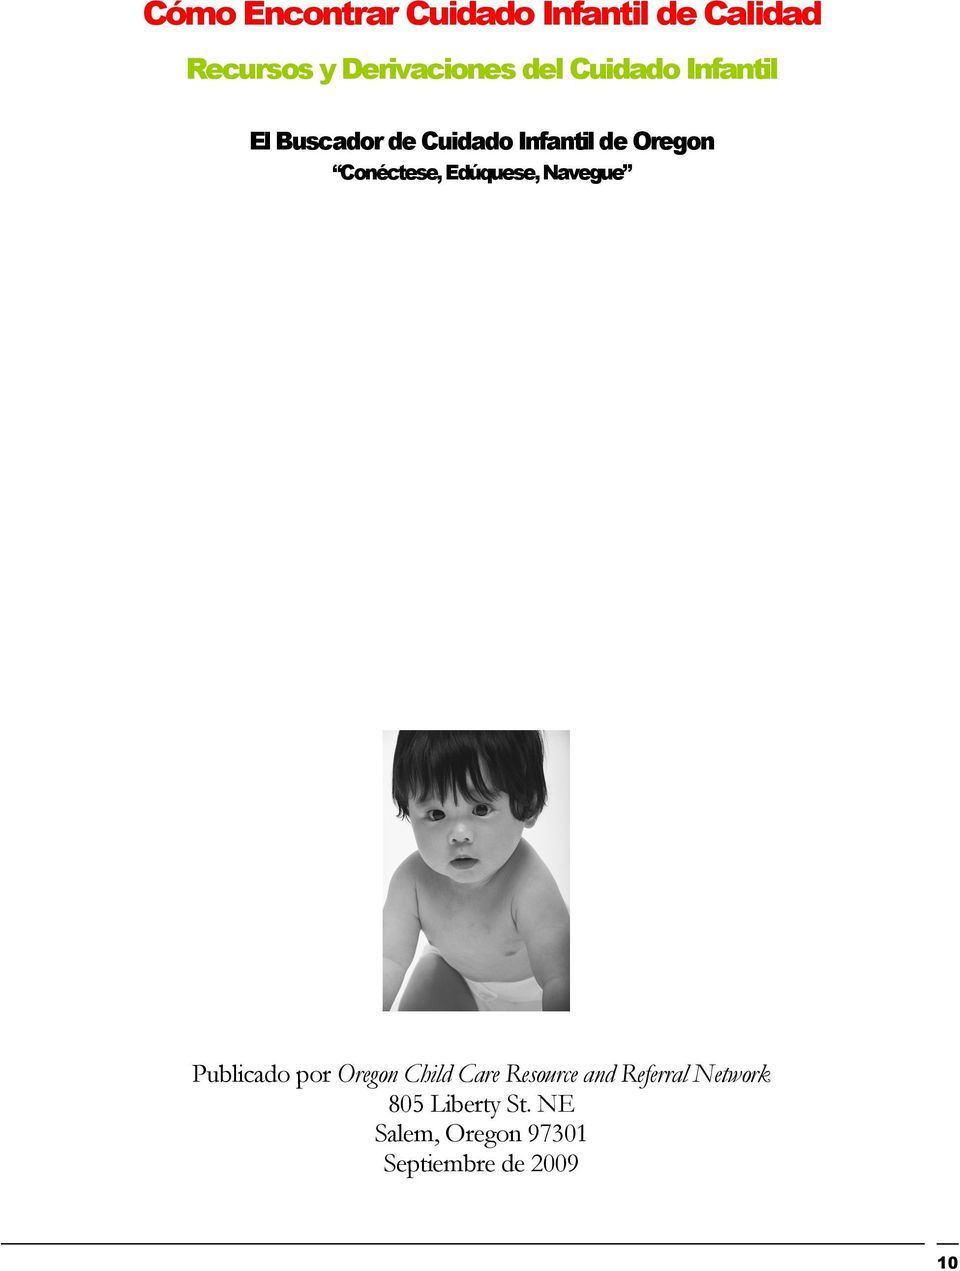 Edúquese, Navegue Publicado por Oregon Child Care Resource and